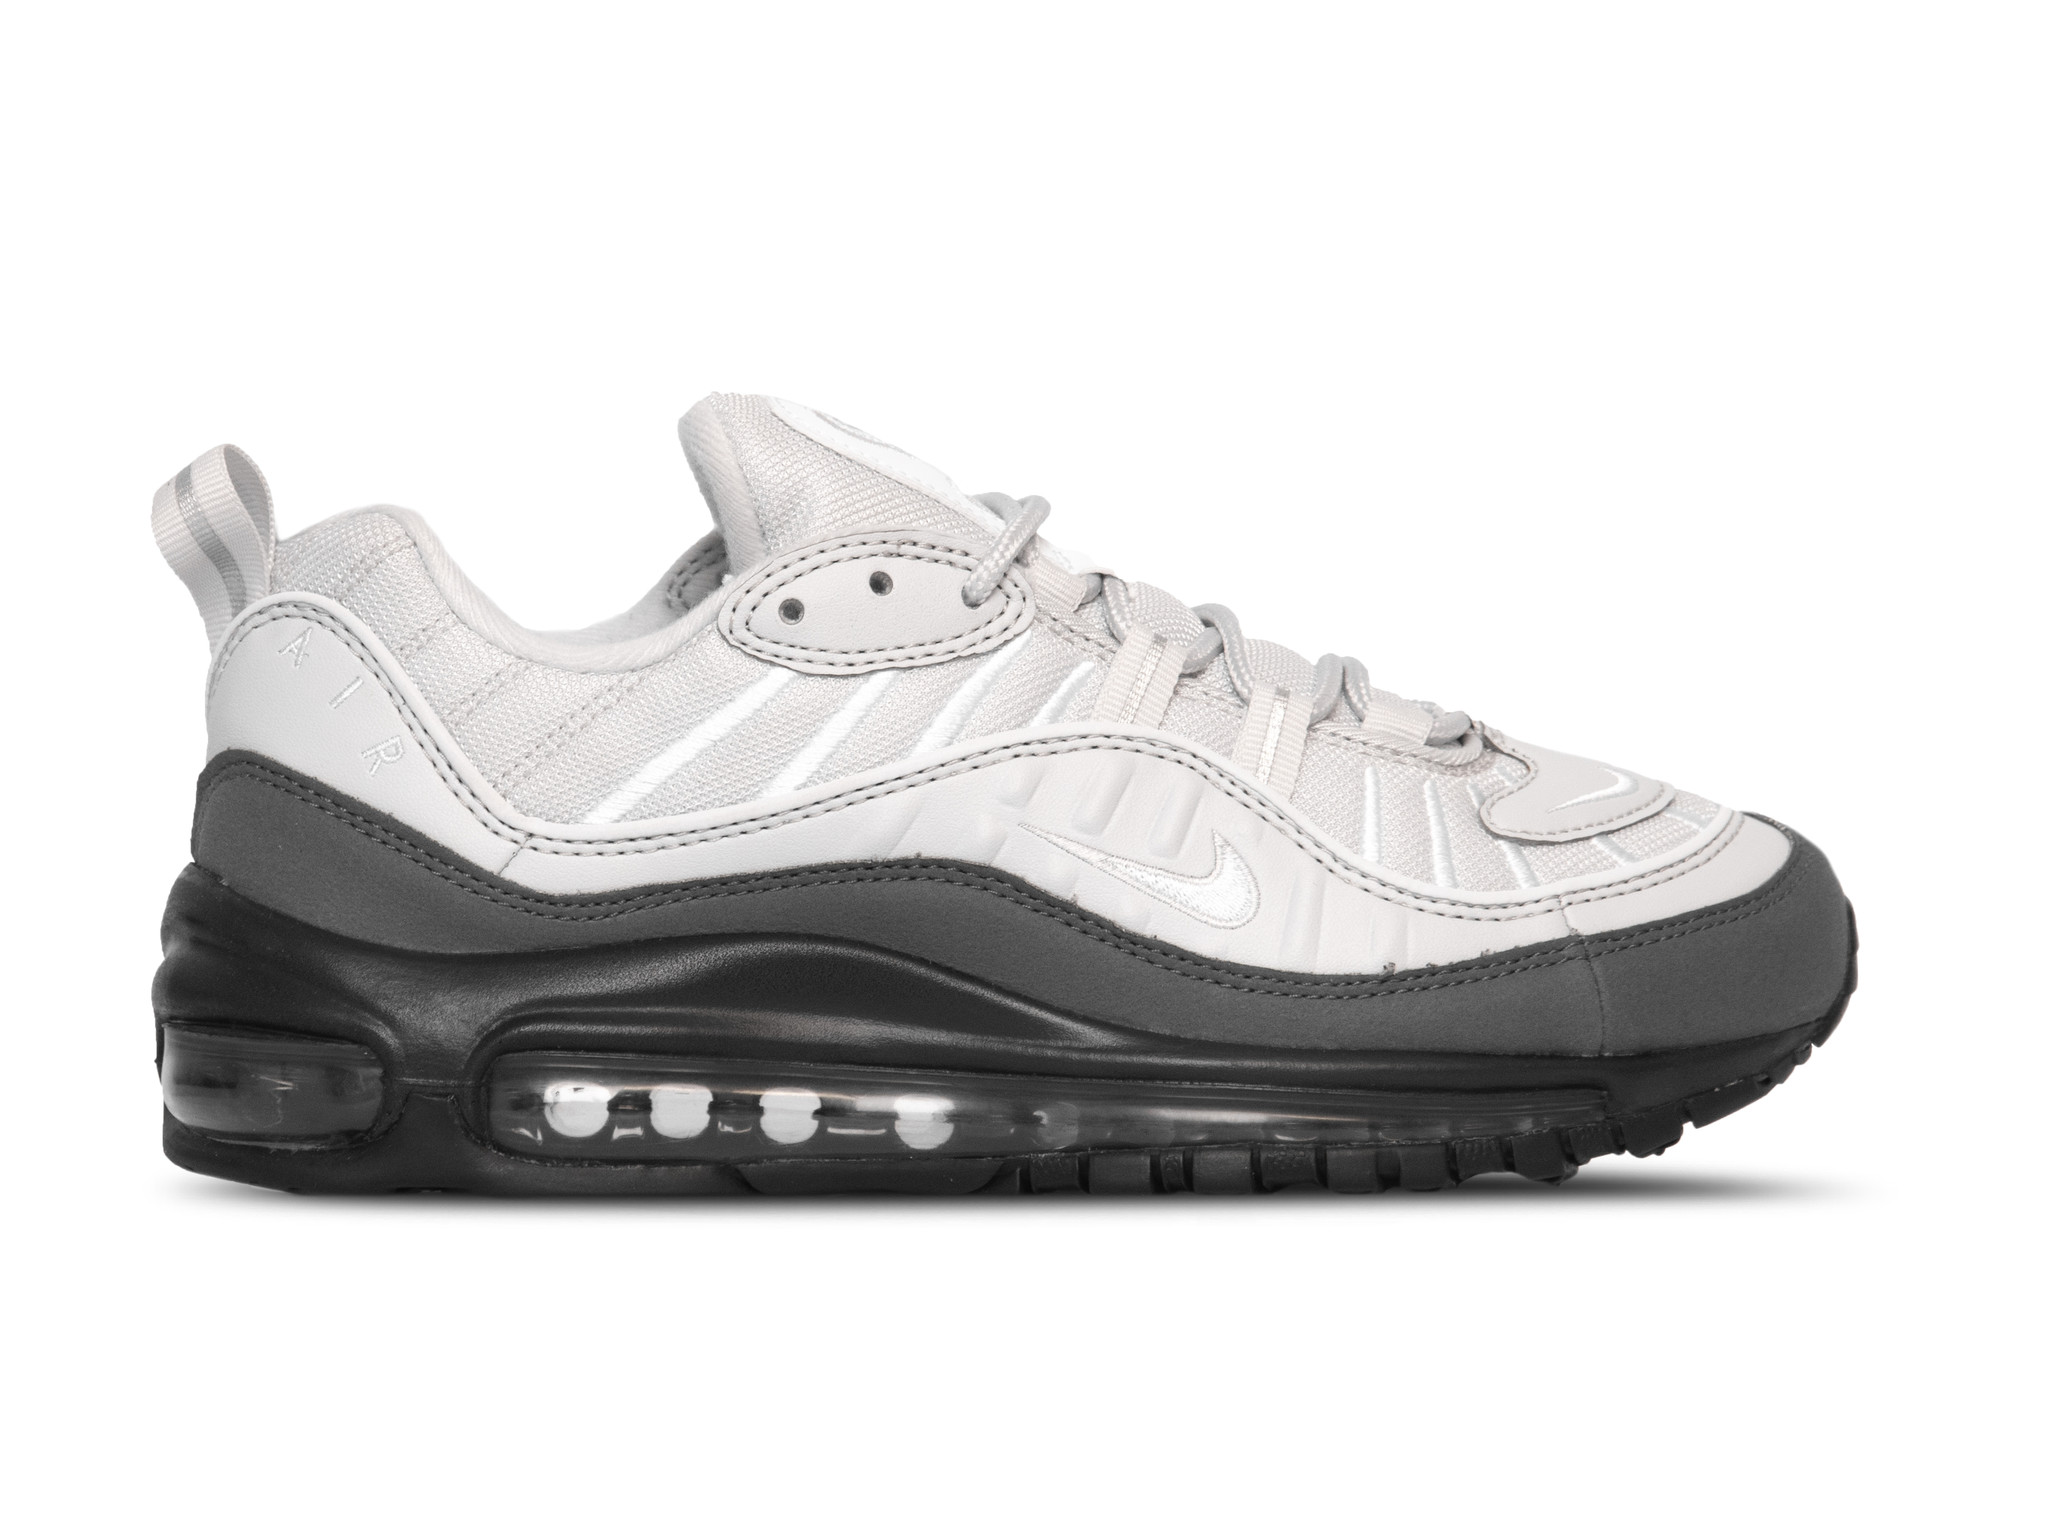 Nike Air Max 98 White White Vast Grey Dark Grey 640744 111 | Bruut Online  shop